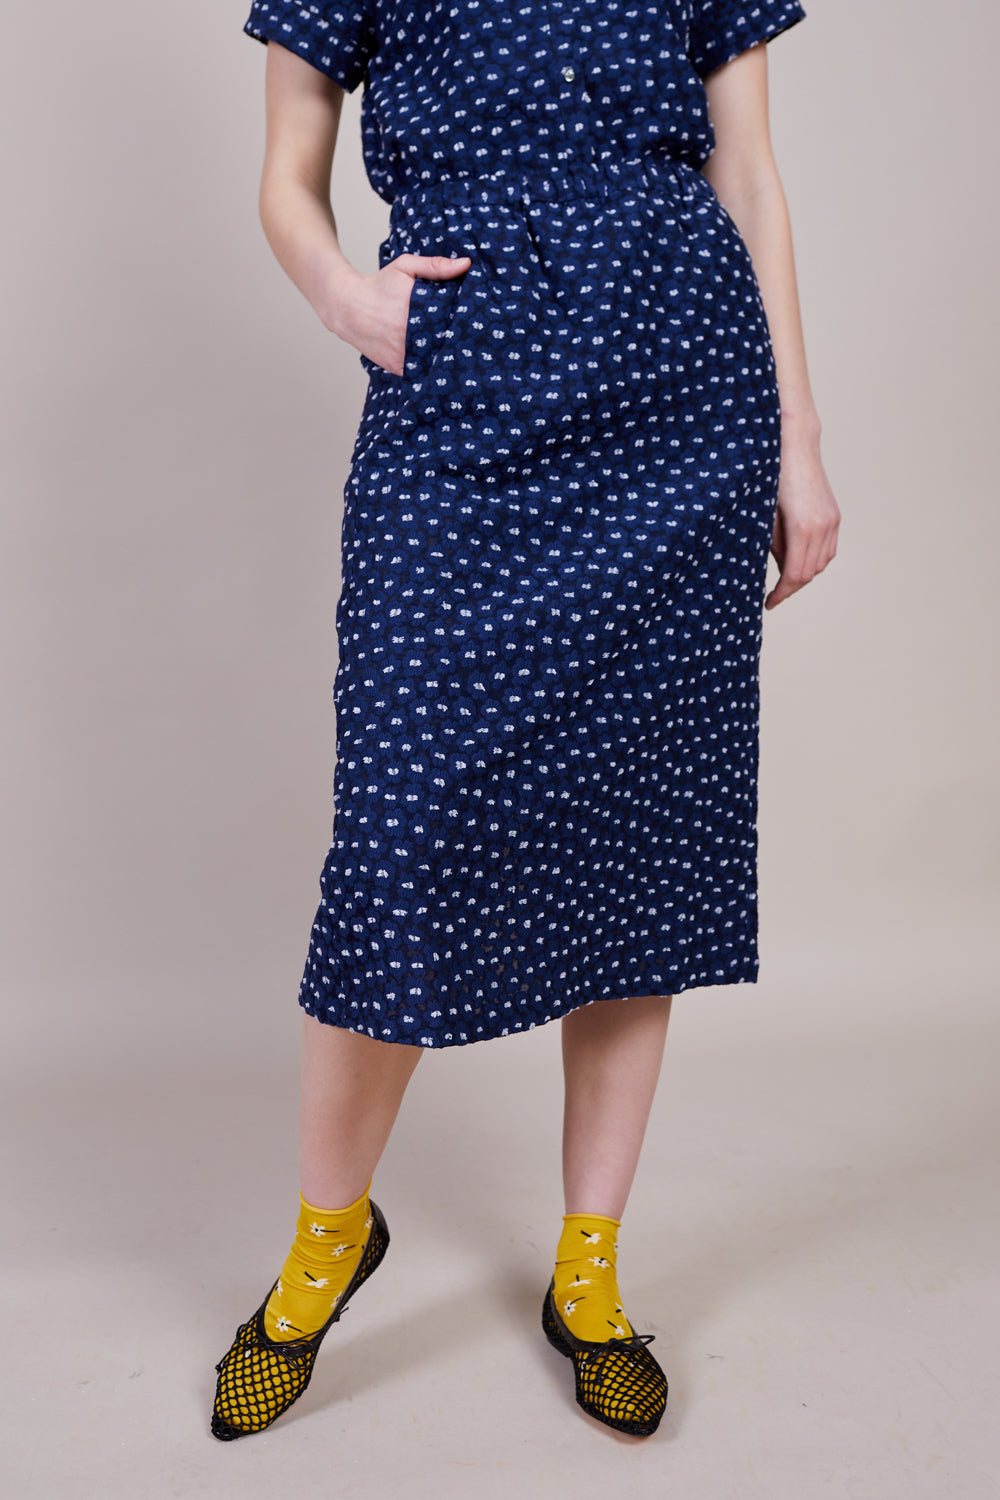 Daisy Dora Skirt in Navy